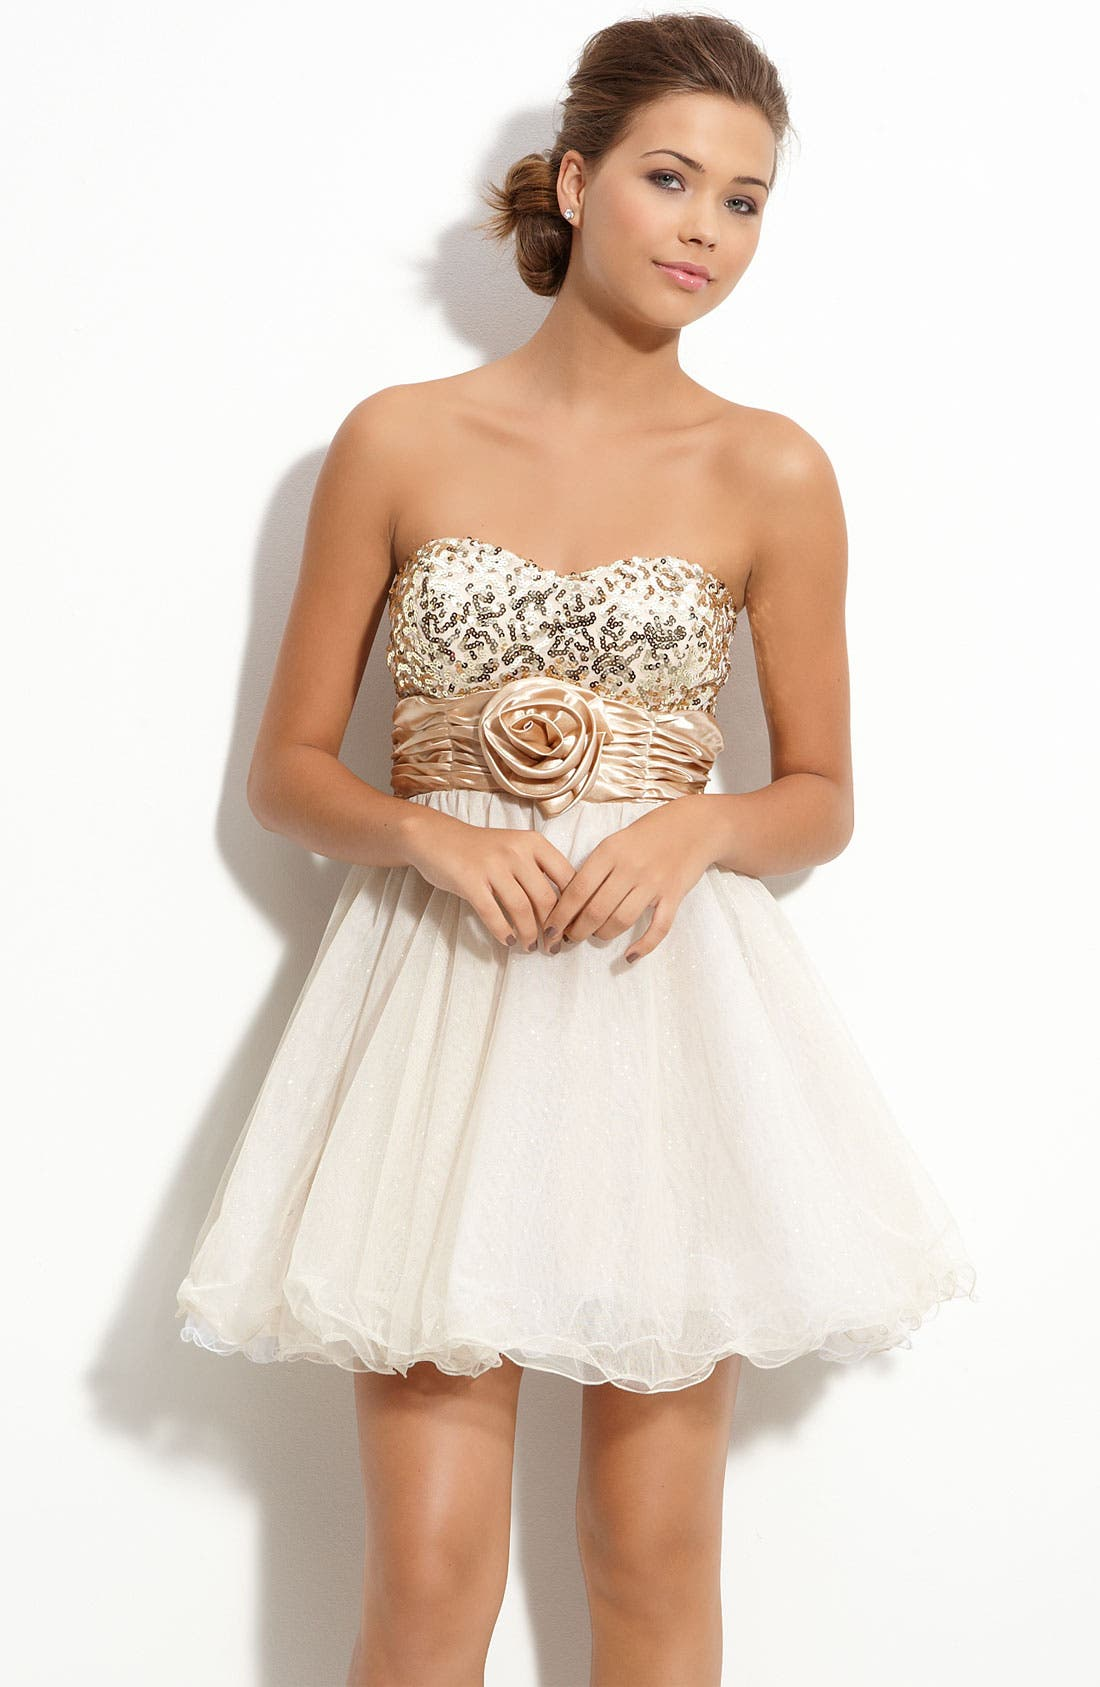 Alternate Image 1 Selected - Accidentally In Love Sequin Strapless Party Dress (Juniors)